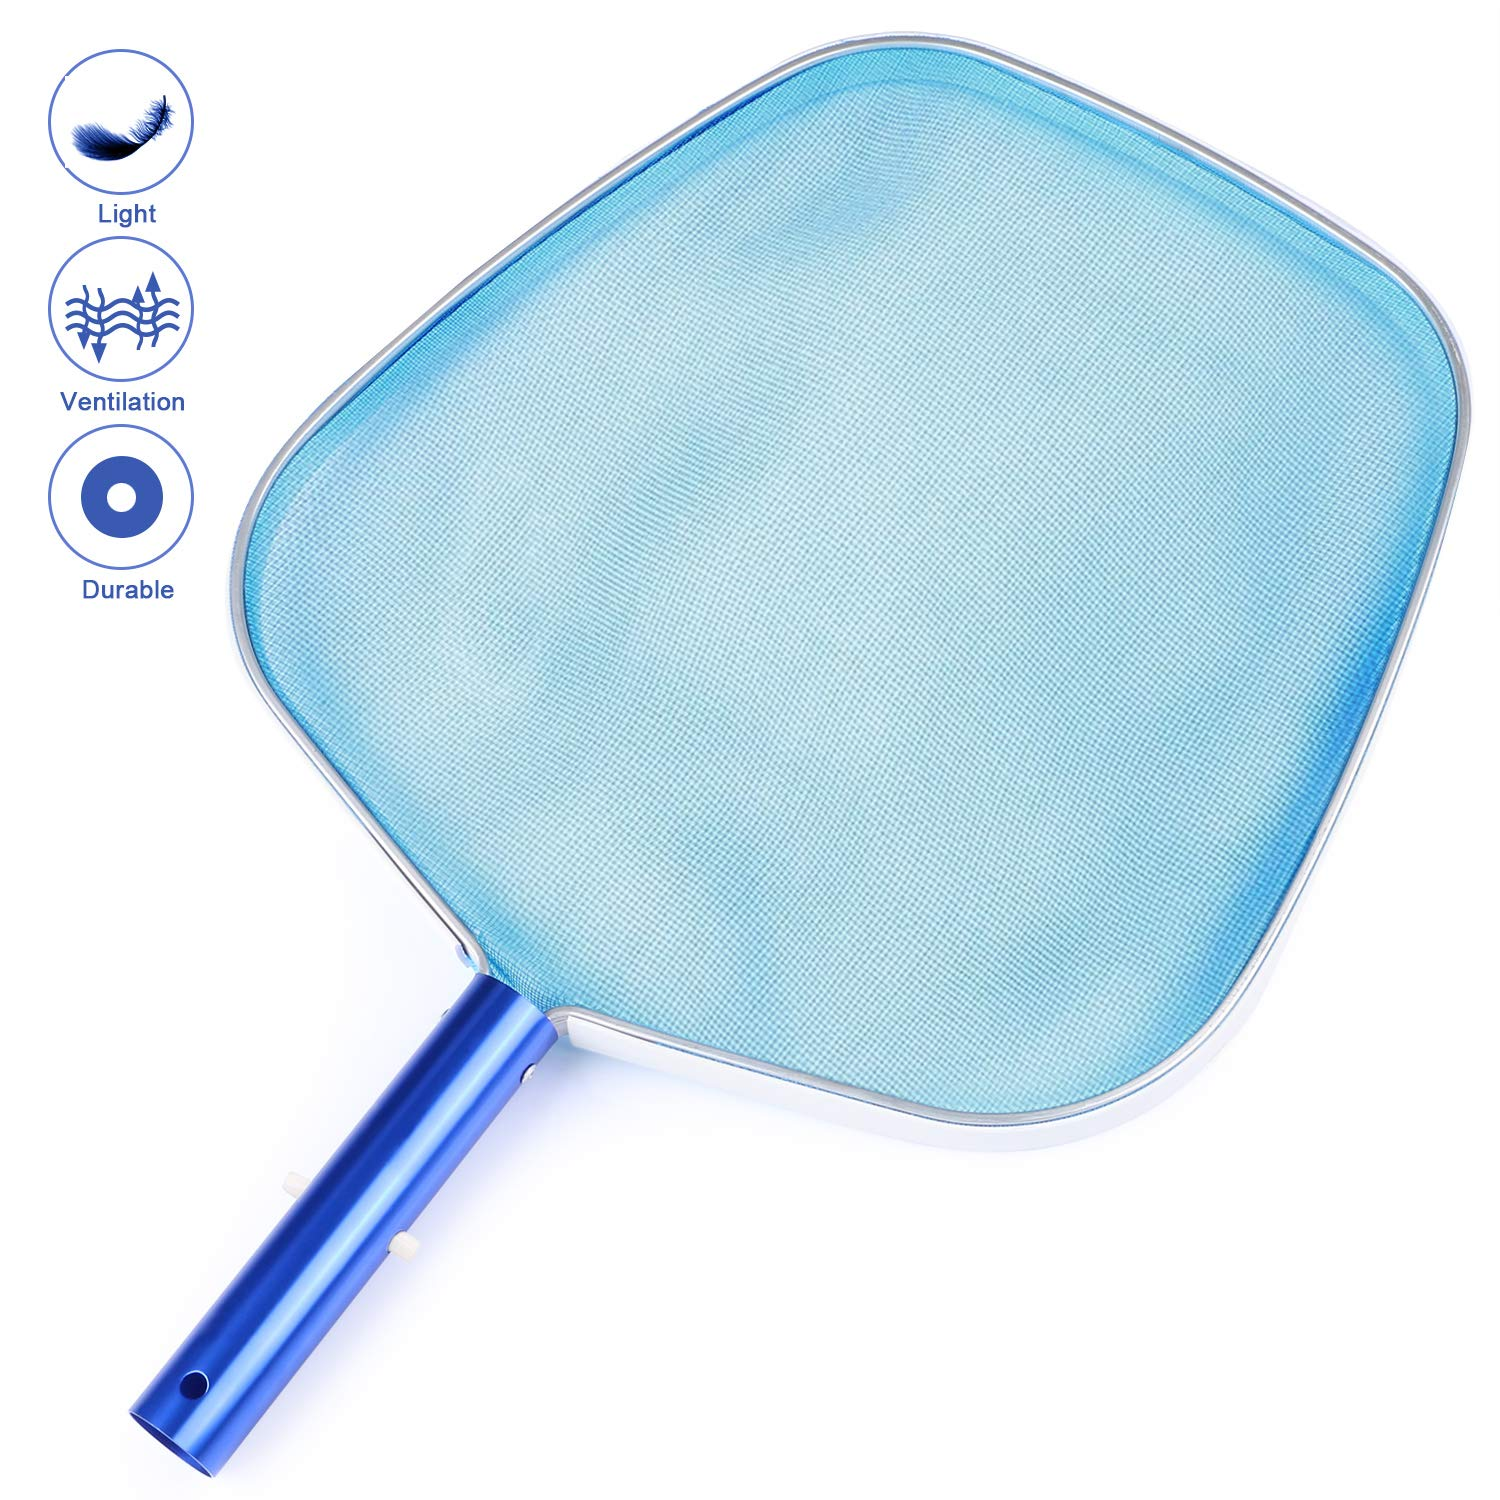 Homga Fine Mesh Pool Net, Heavy Duty Leaf Skimmer - Professional Pool Skimmer, for Spas, Swimming Pool, Hot Tubs,Fountain, Fish Tank Ect for Cleaning Pool Leaves and Debris by Homga